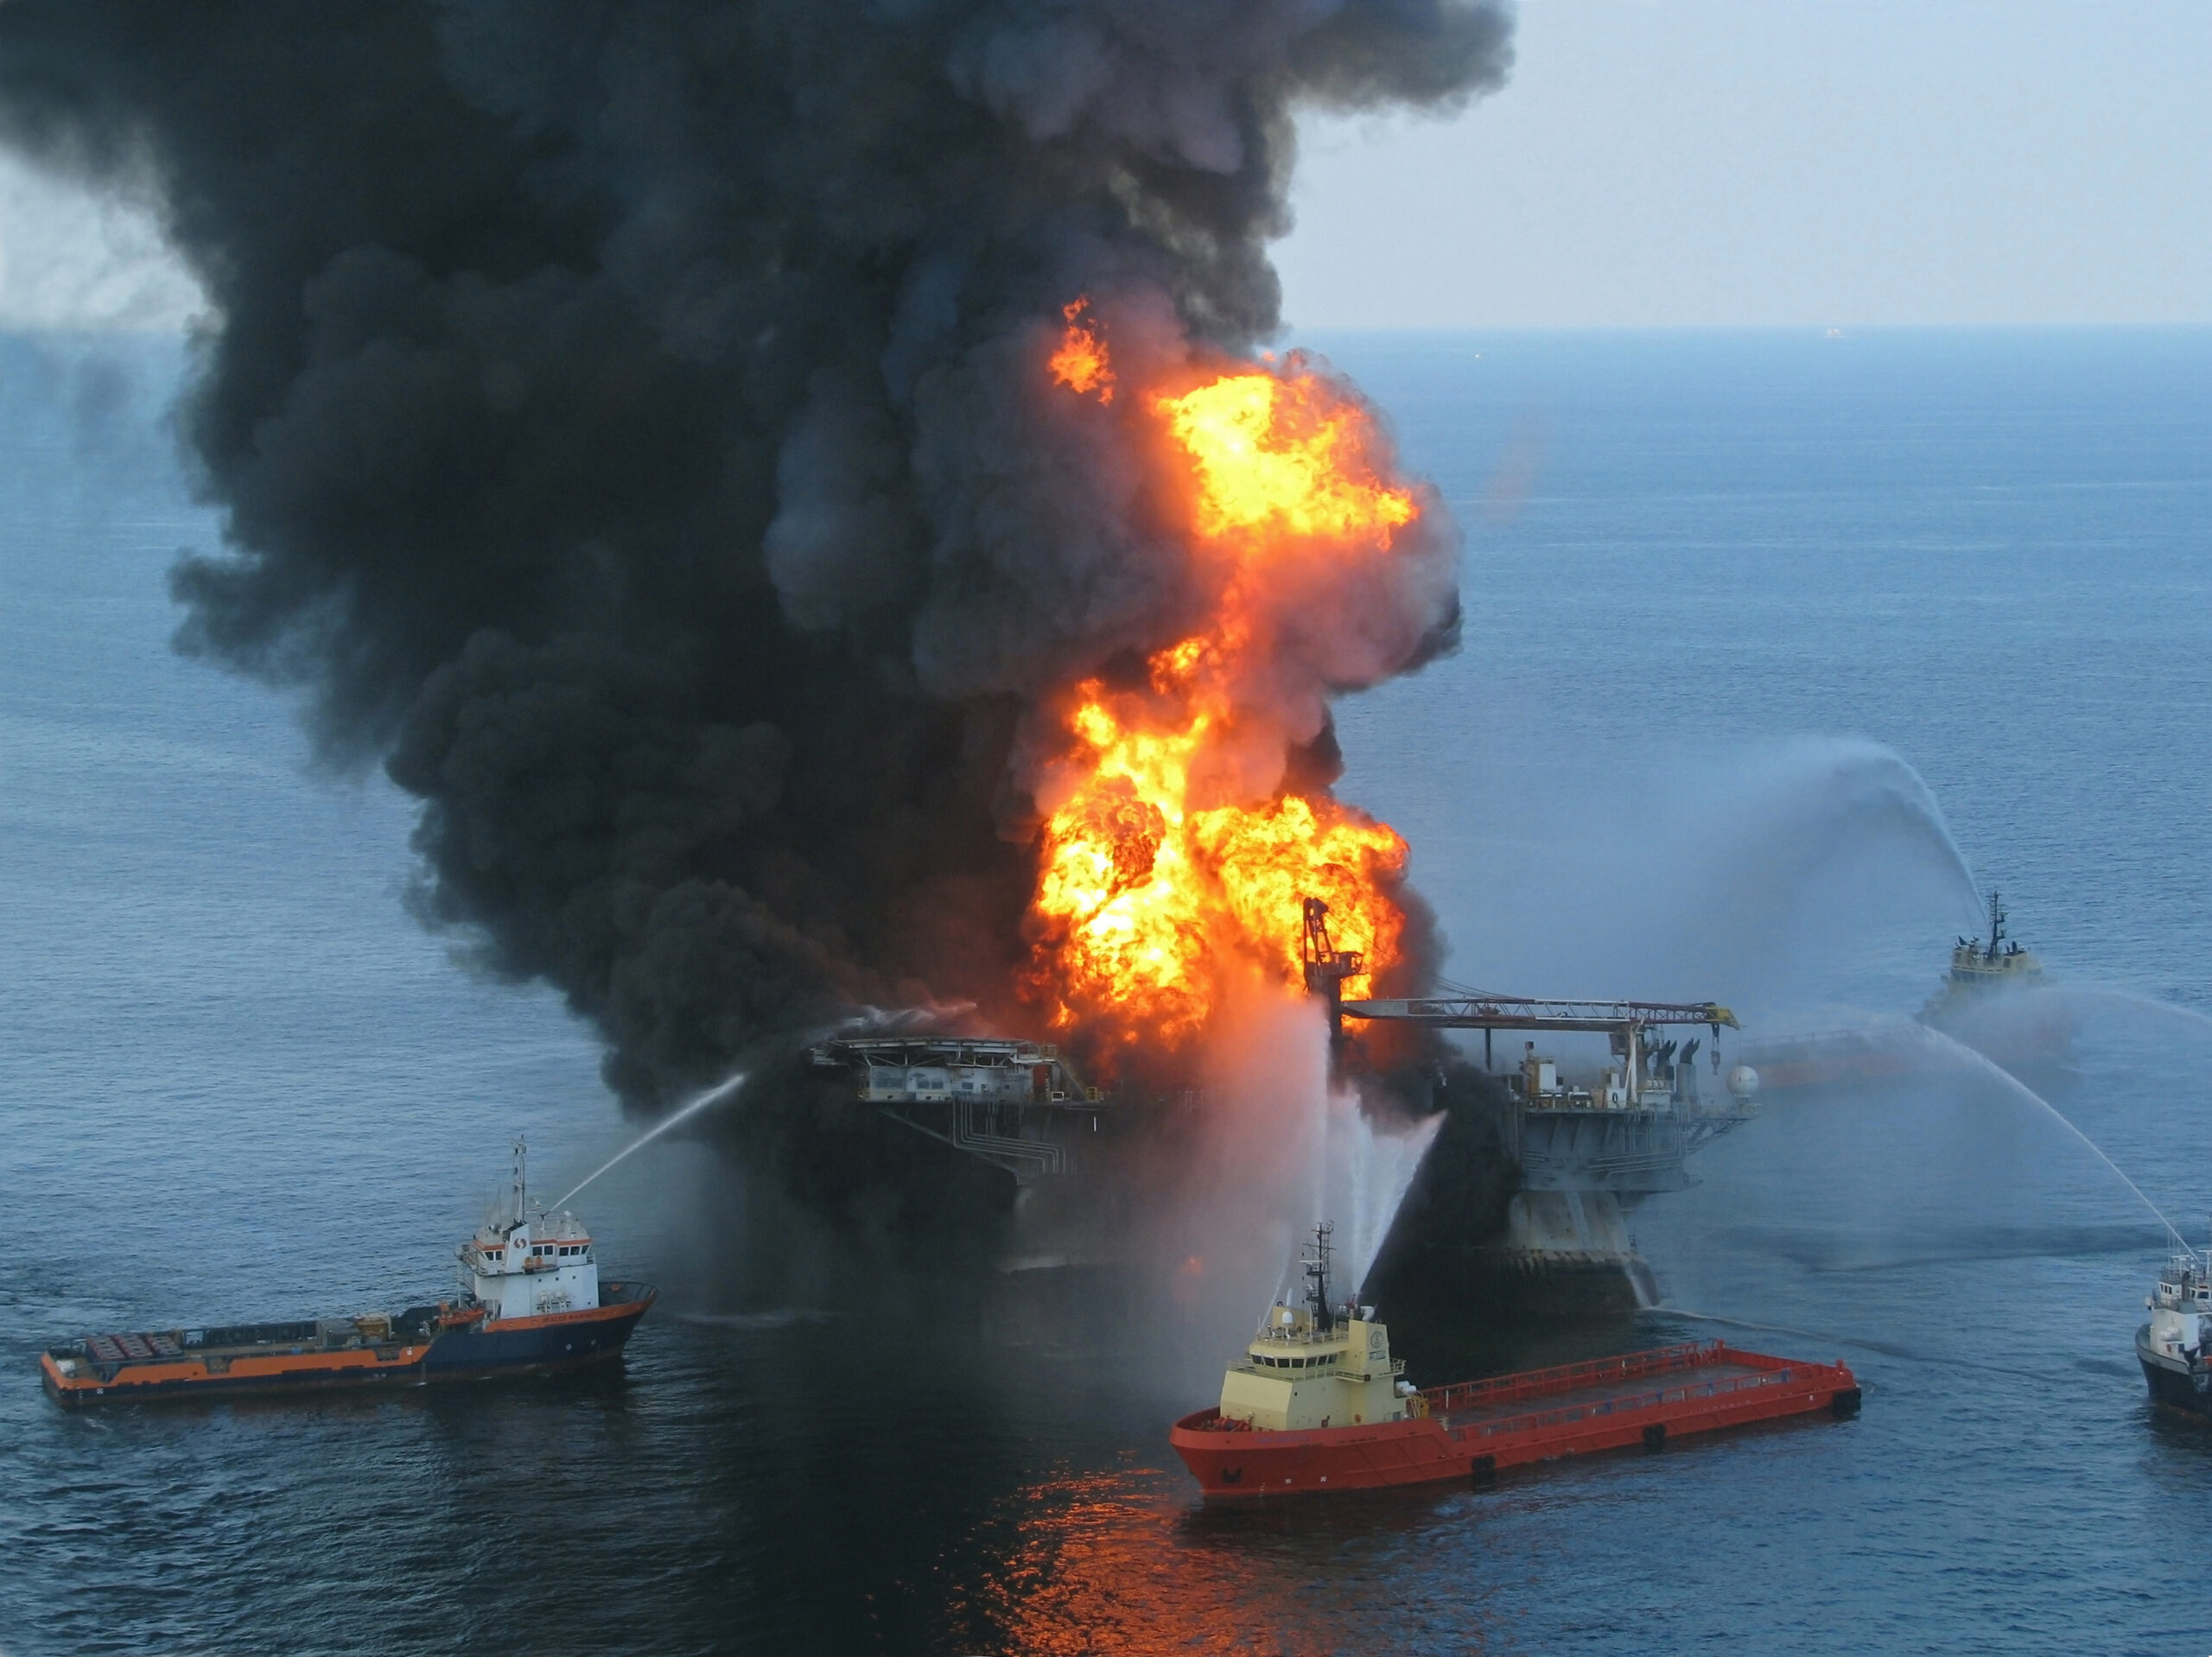 Anchor handling tugs and platform supply vessels combat the fire on the Deepwater Horizon while the U.S. Coast Guard searches for missing crew. Photo via Wikipedia.